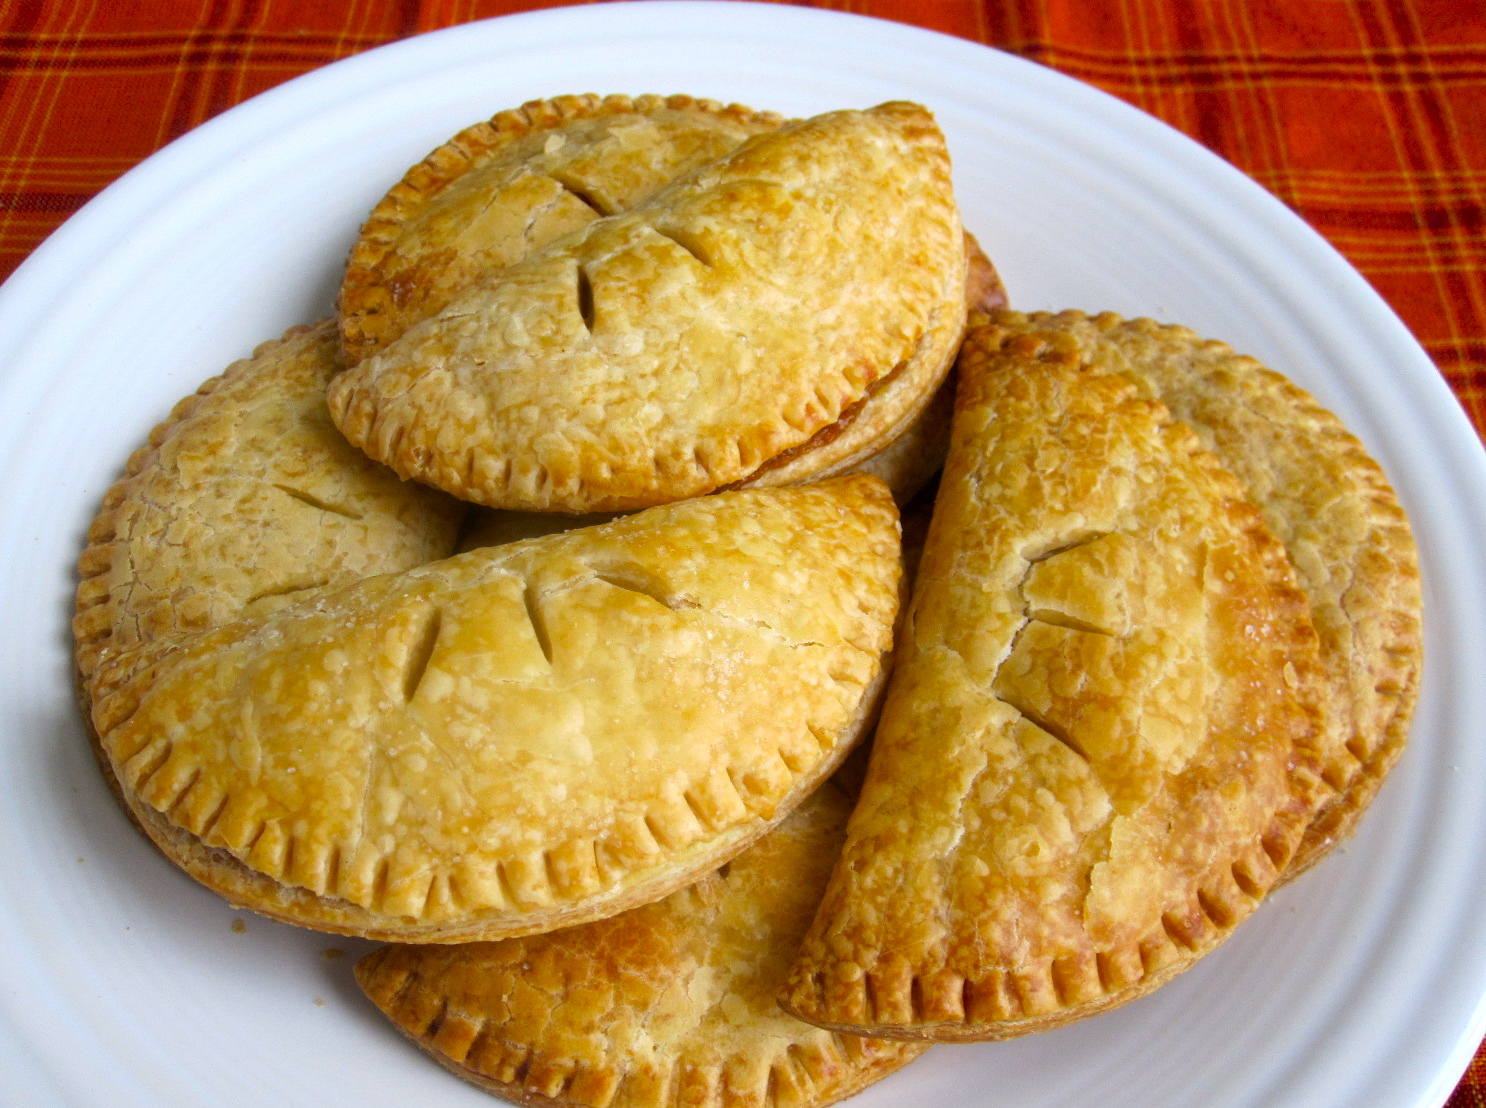 The Cultural Dish: Pumpkin Pasties